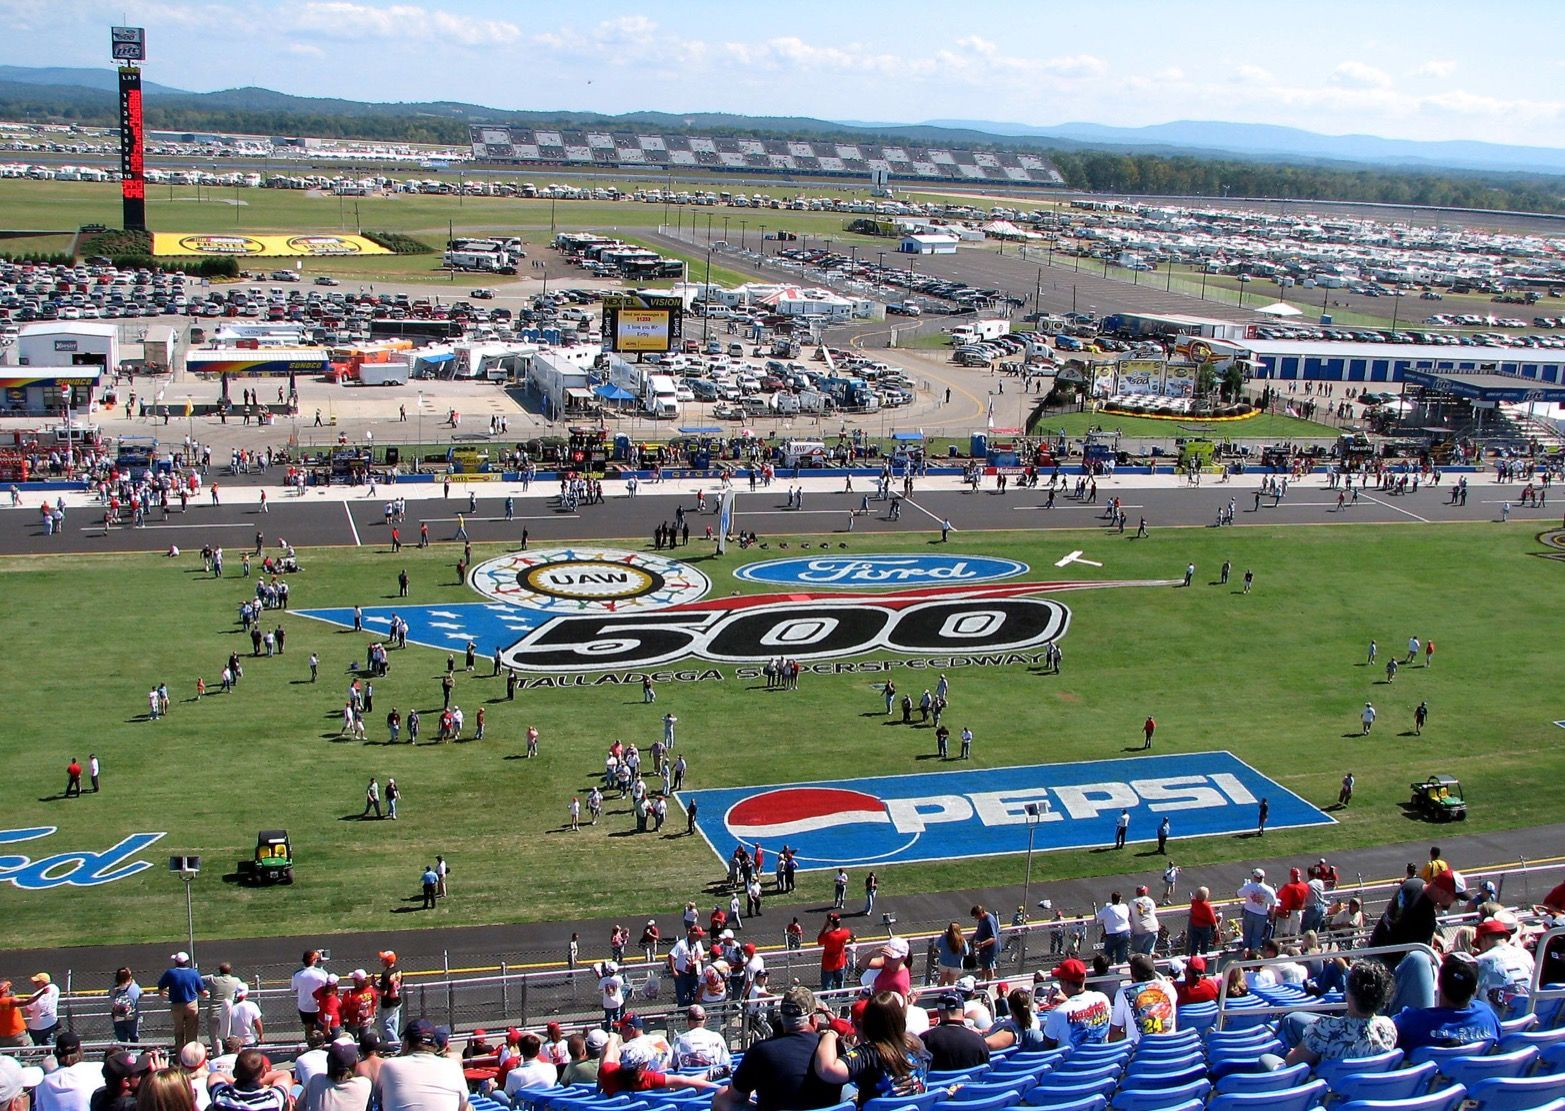 Pin On Indy 500 Greatest Spectacle In Racing